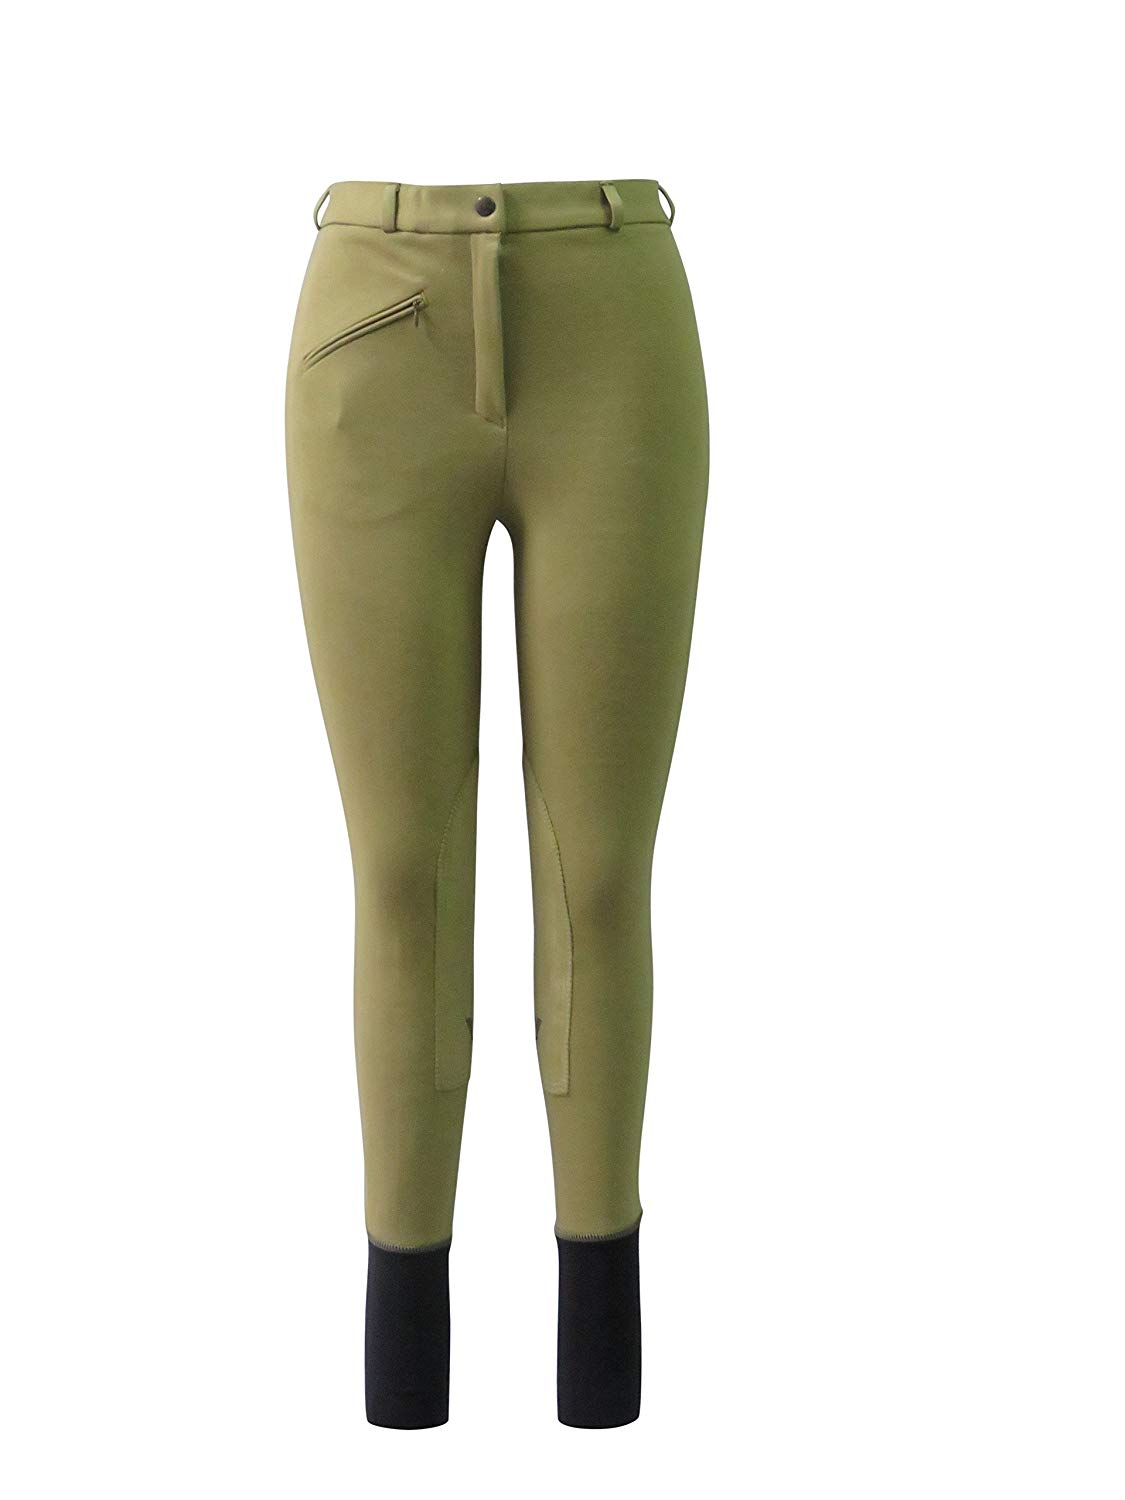 TuffRider Ladies Basic LowRise Pull-On Knee Patch Breeches